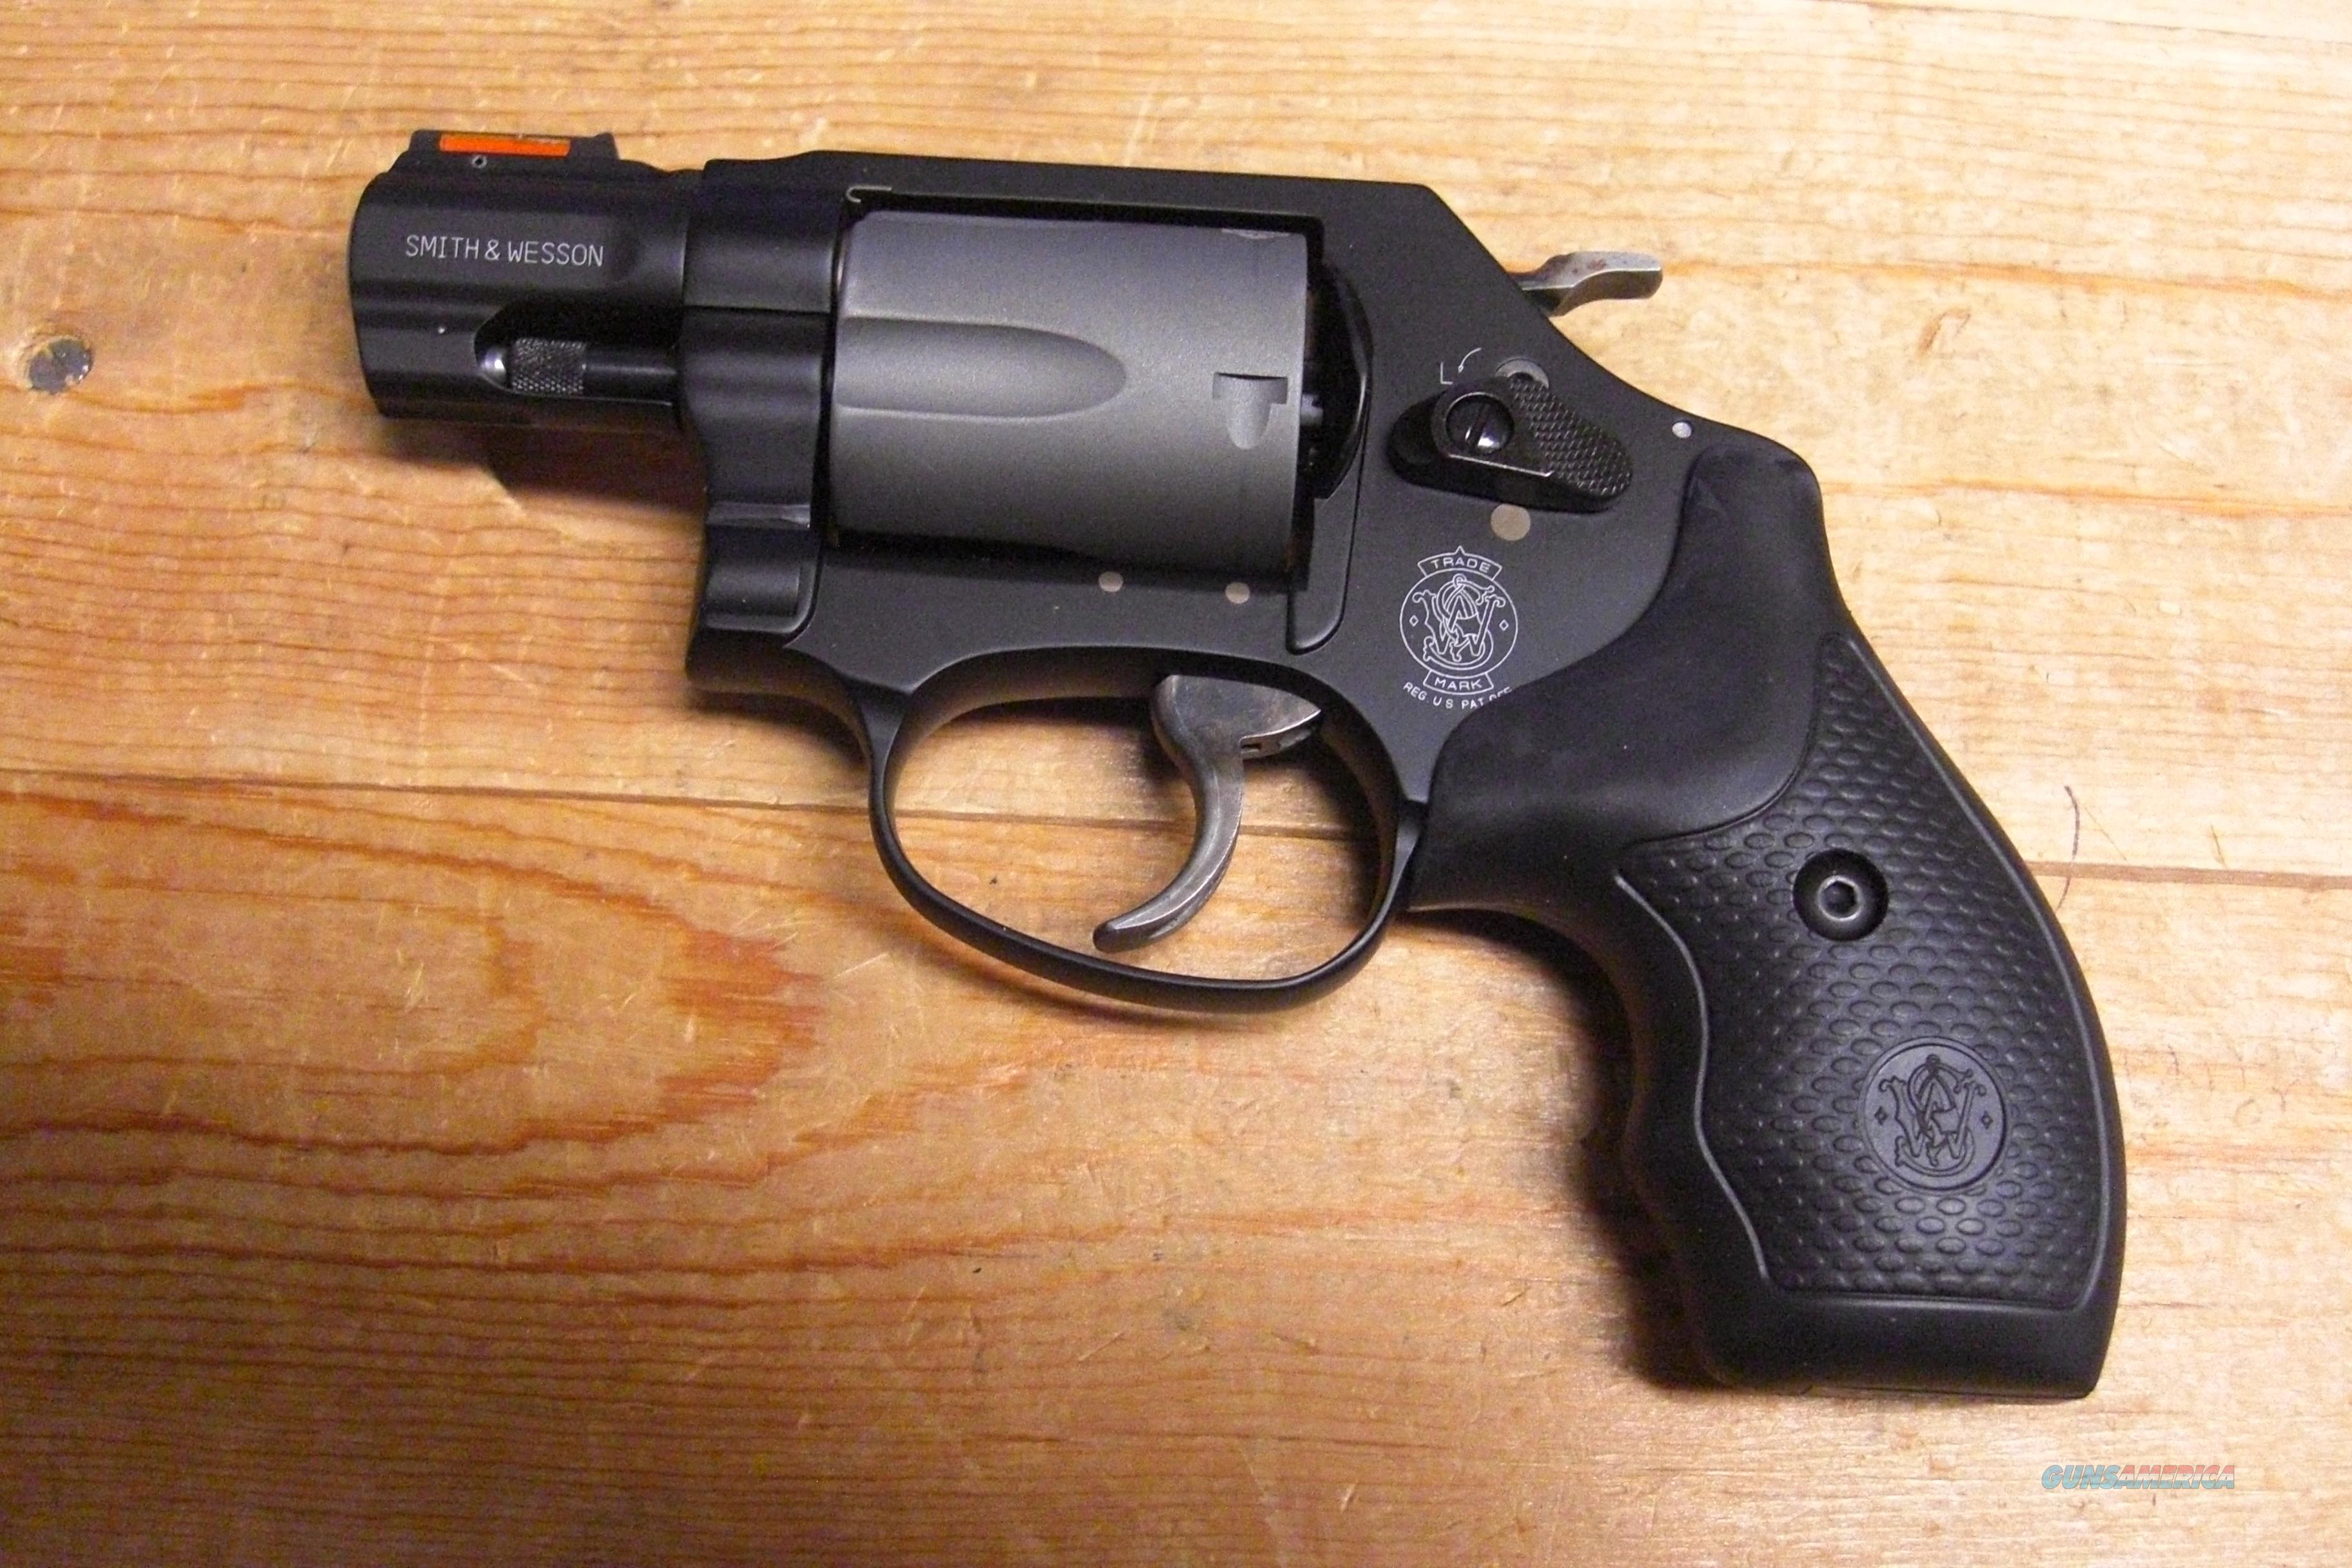 Smith & Wesson 360PD AirLite  Guns > Pistols > Smith & Wesson Revolvers > Pocket Pistols